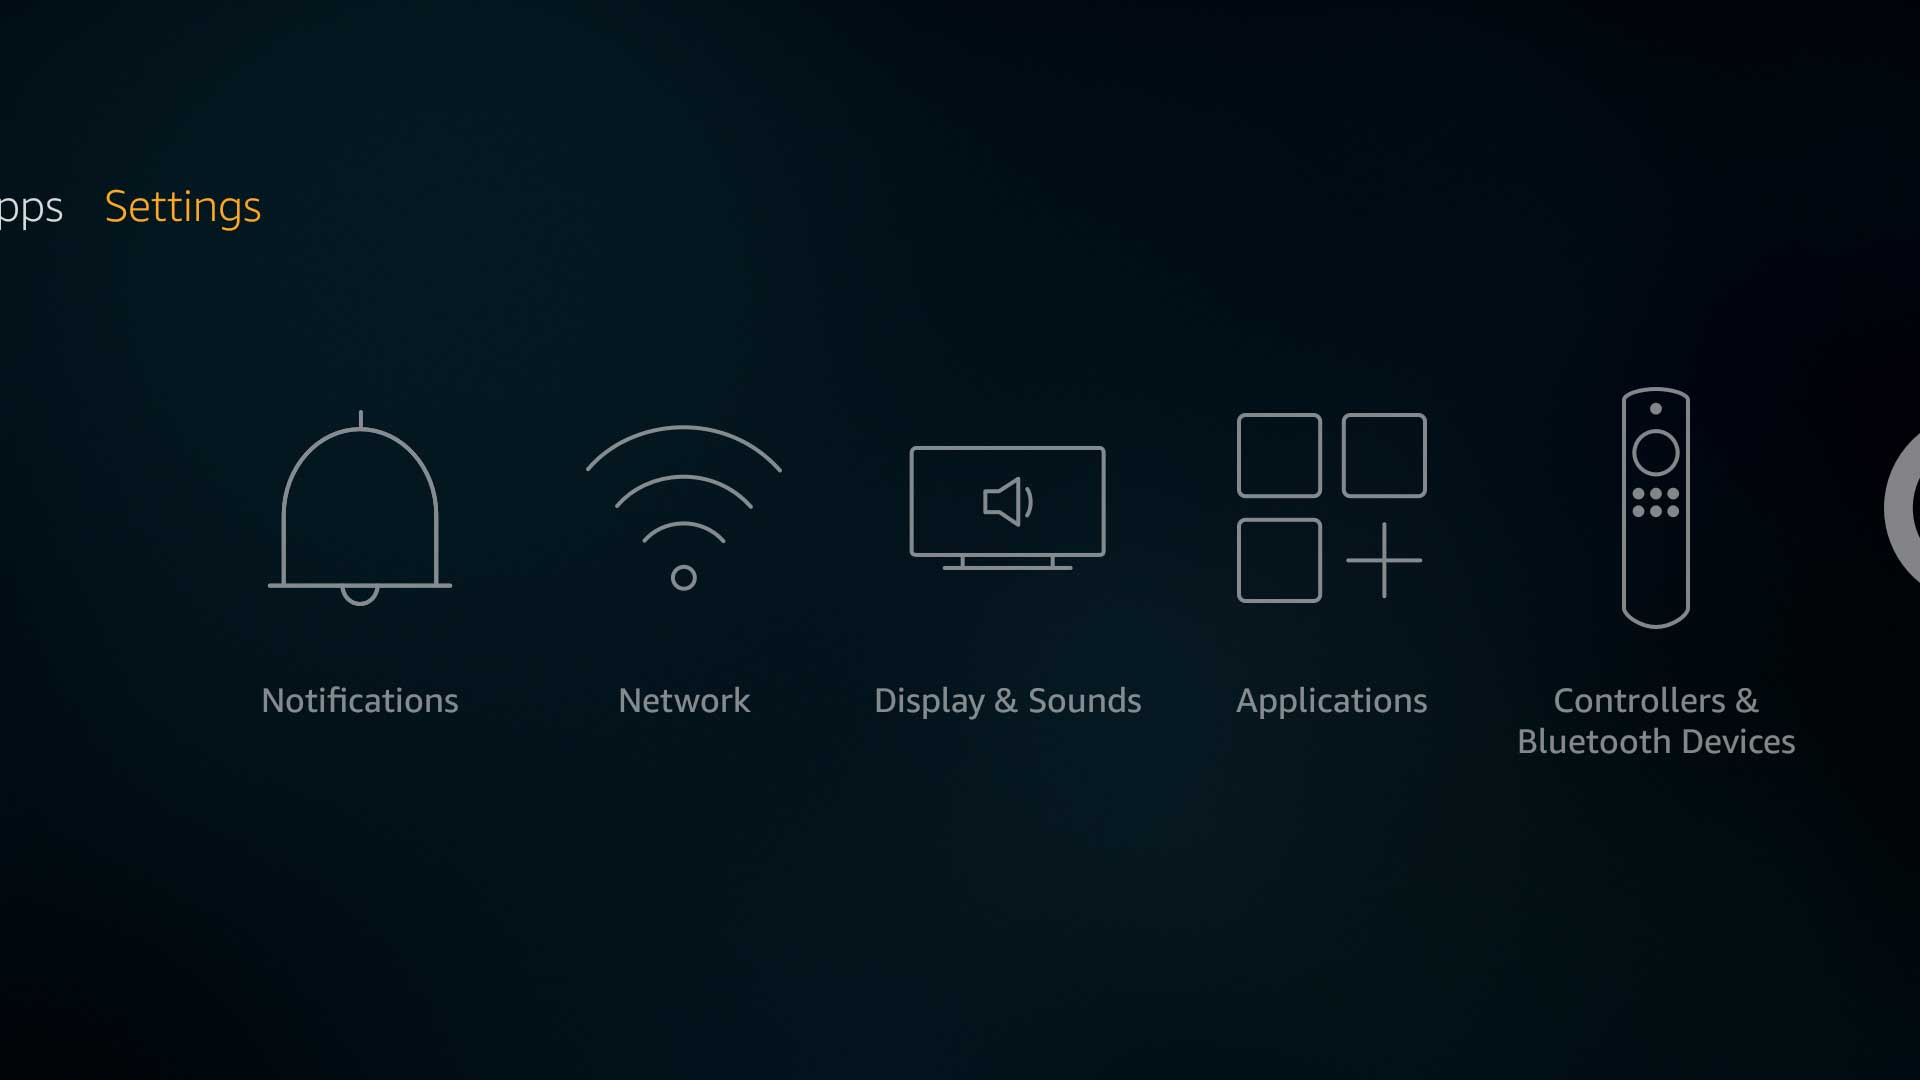 How to disable auto-playing video and audio on the new Fire TV home